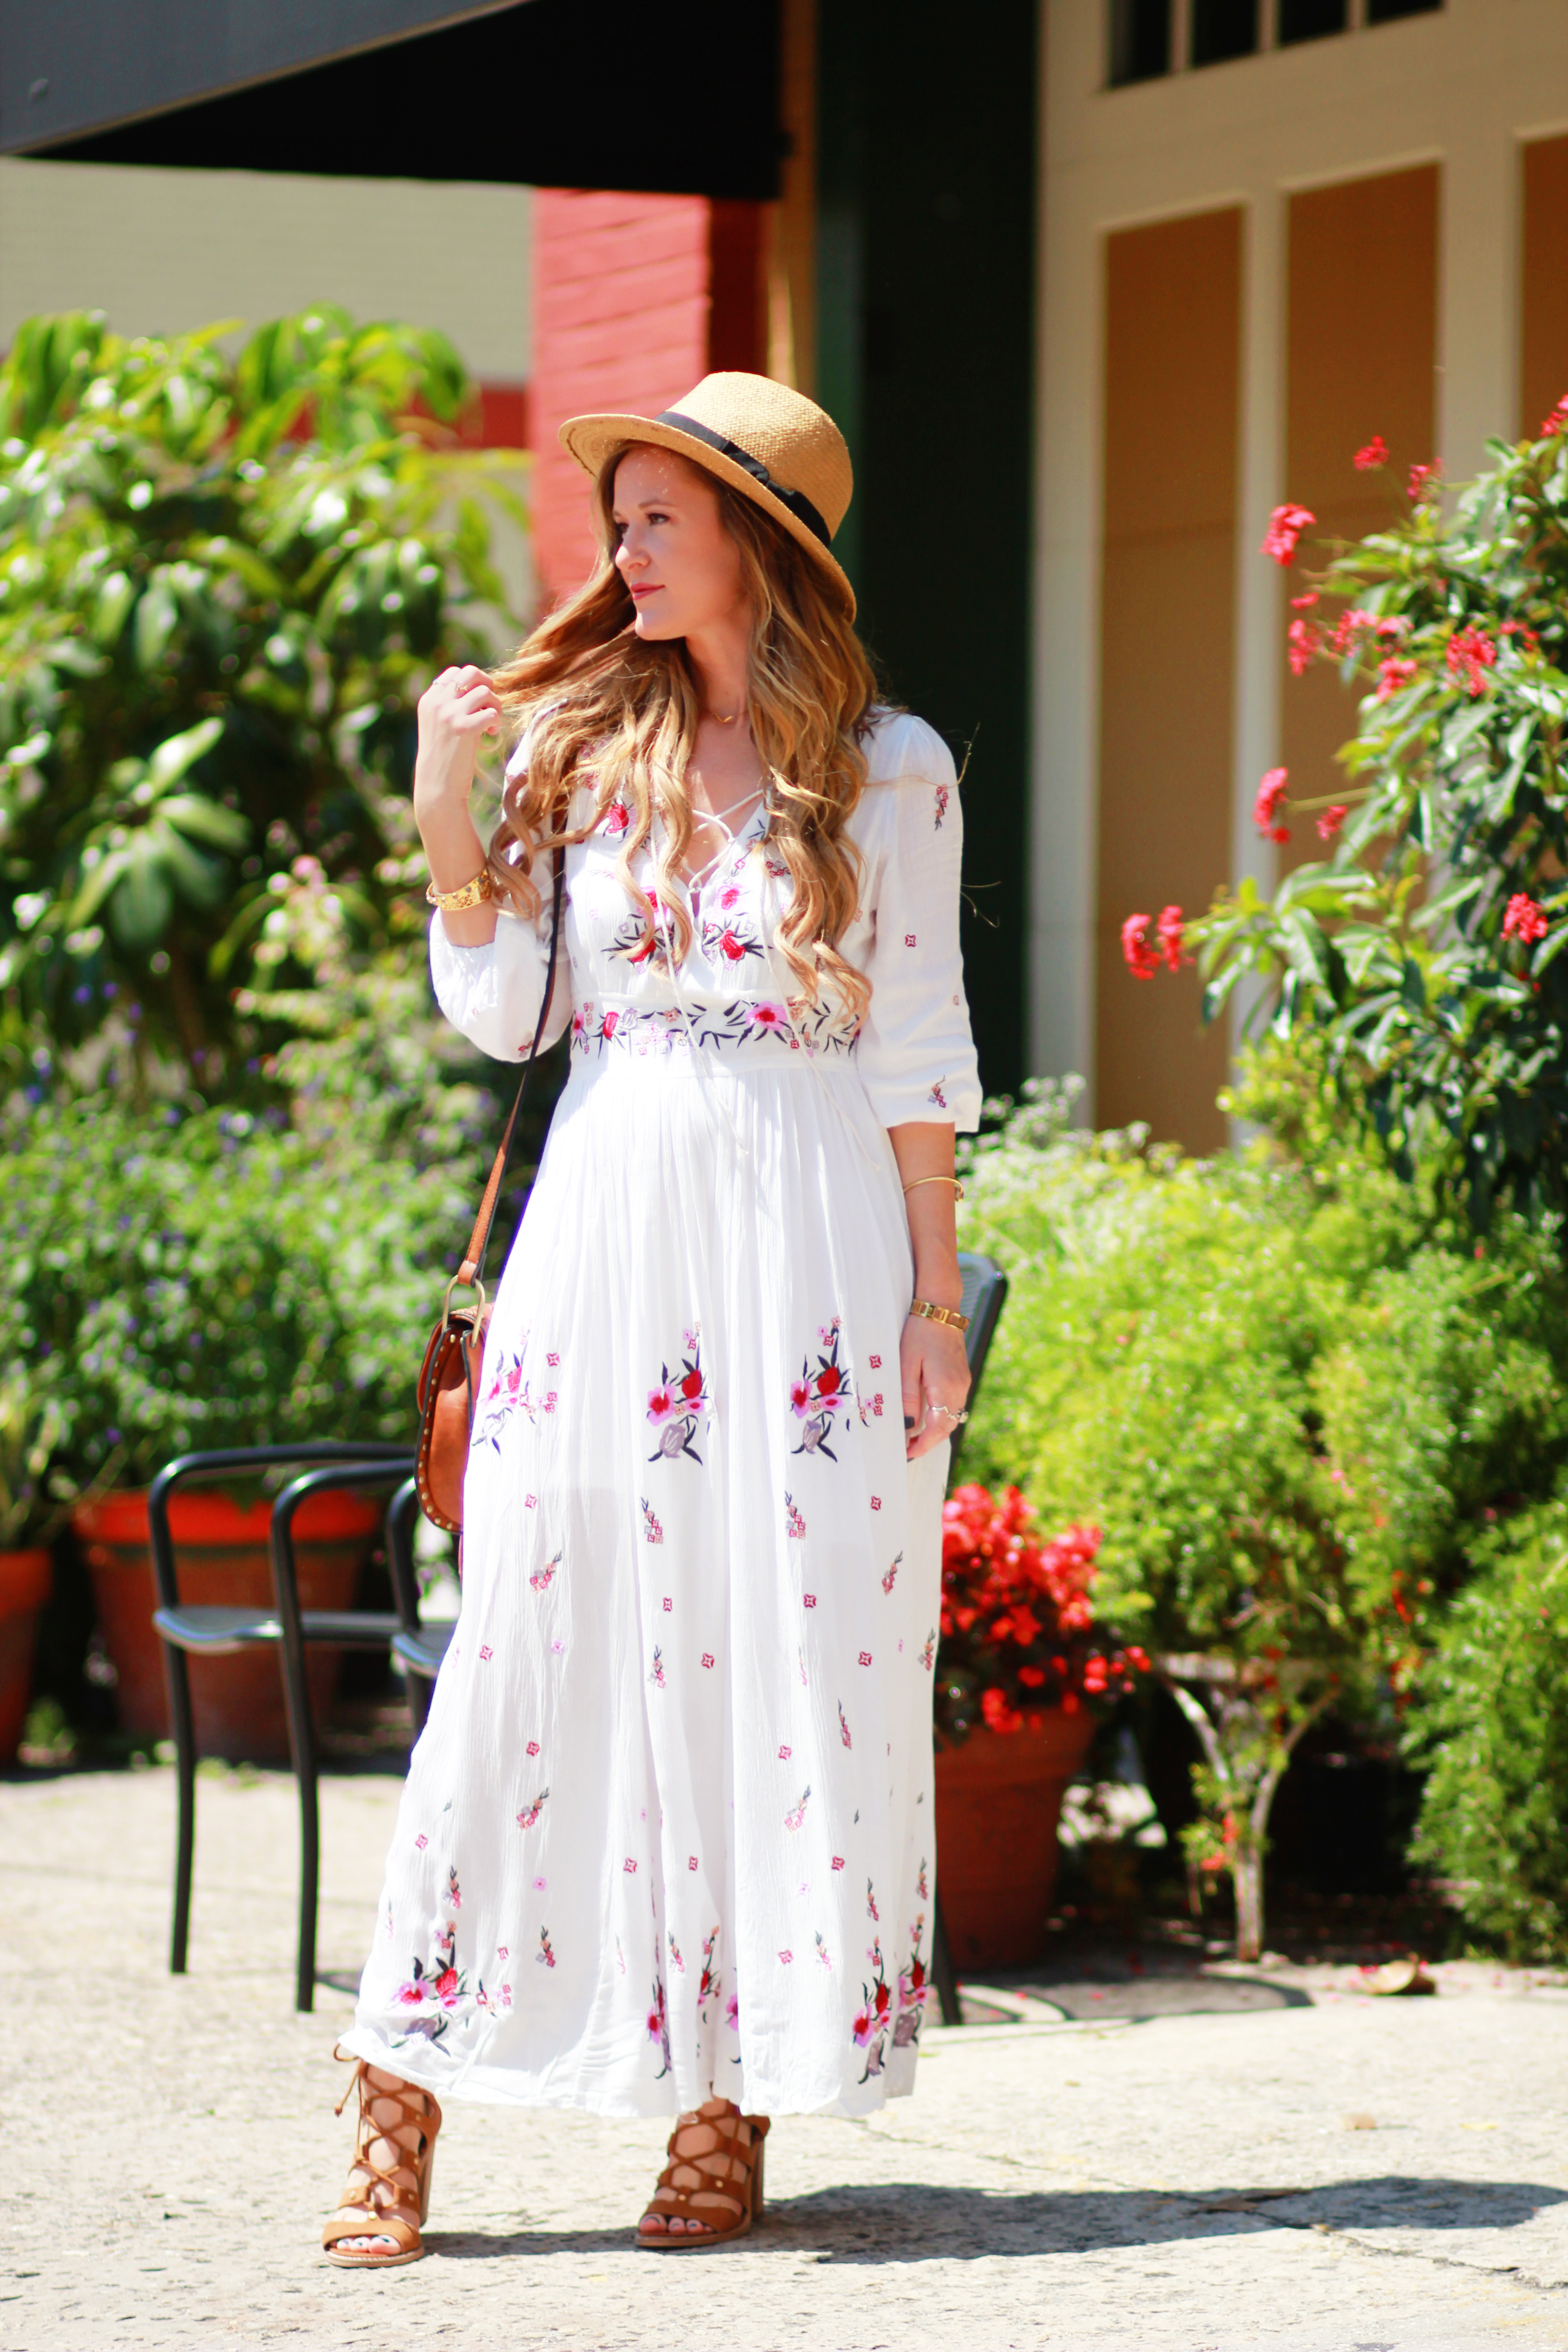 Boho Embroidered Maxi Dress Upbeat Soles Florida